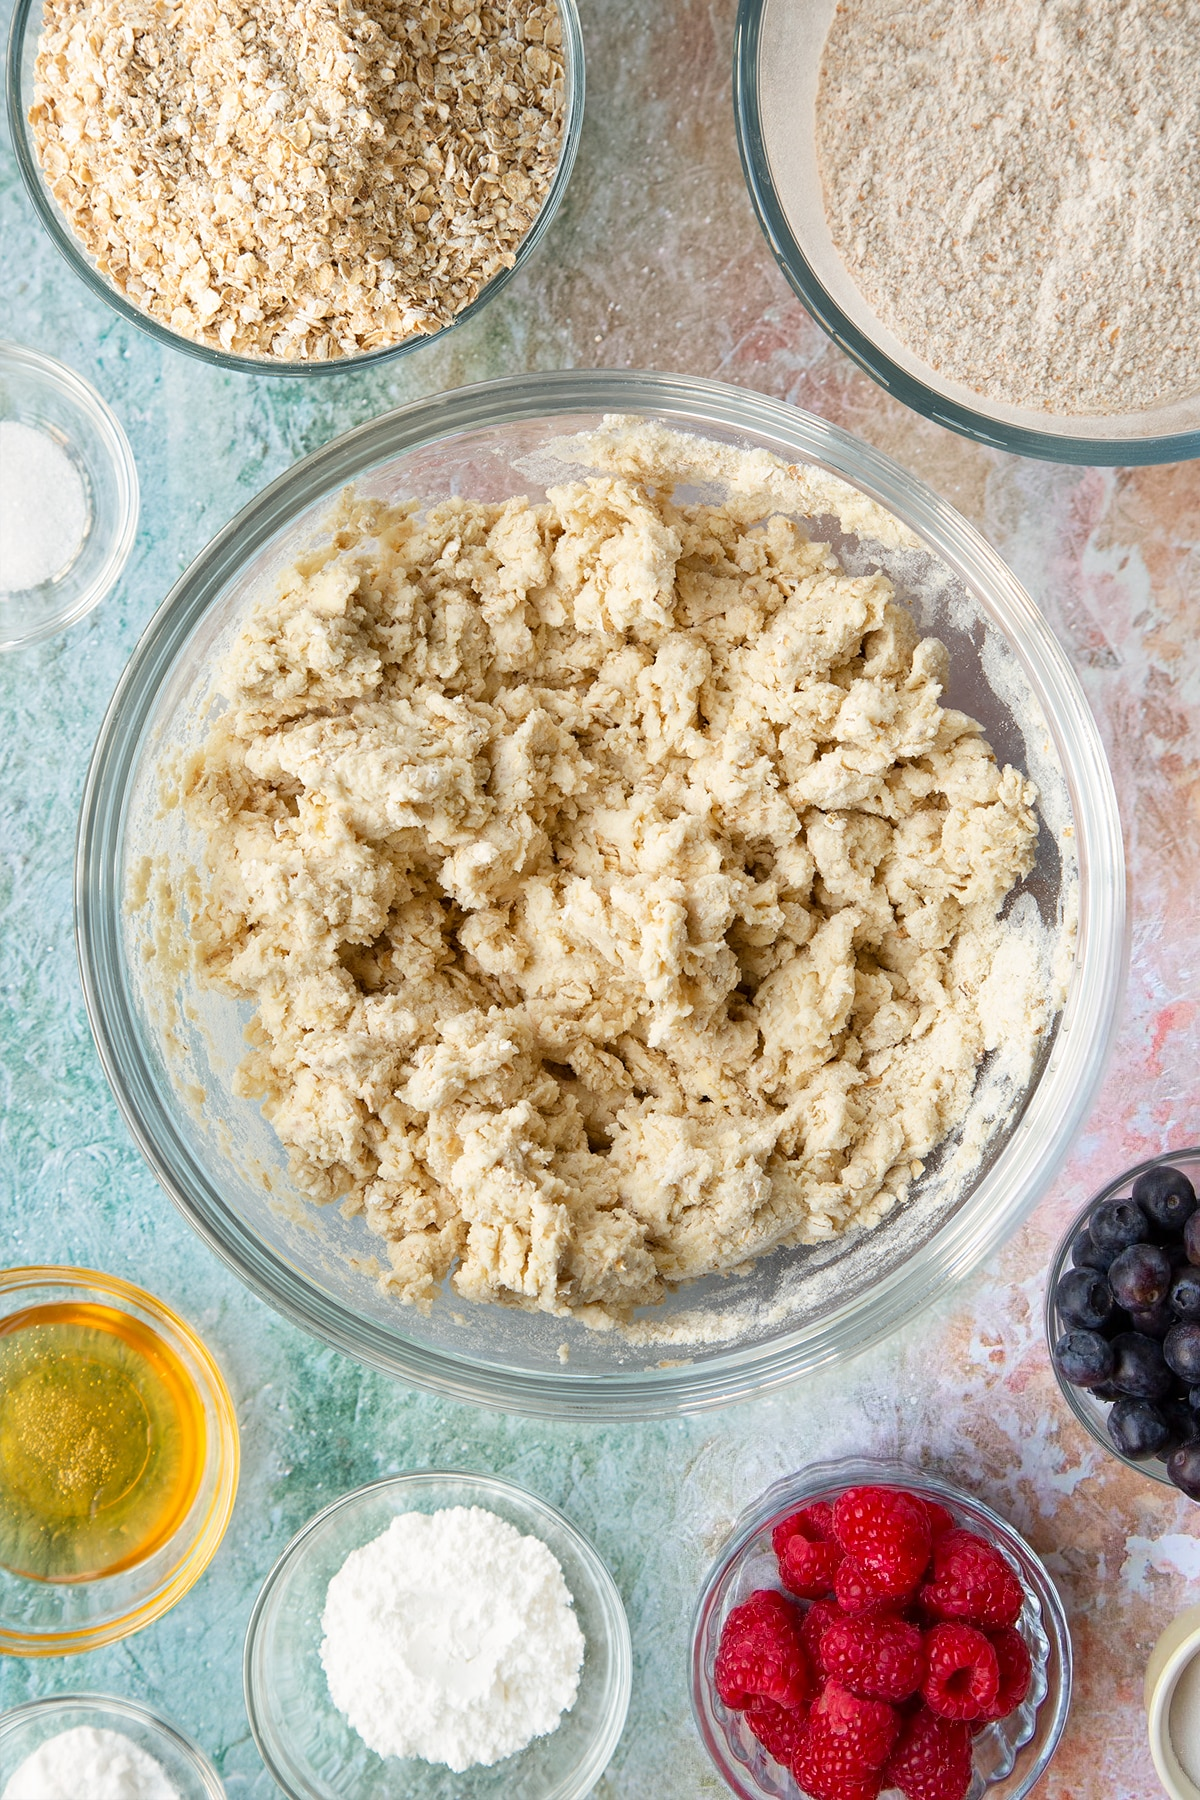 Oatmeal scone dough in a glass mixing bowl. Ingredients to make oatmeal scones surround the bowl.